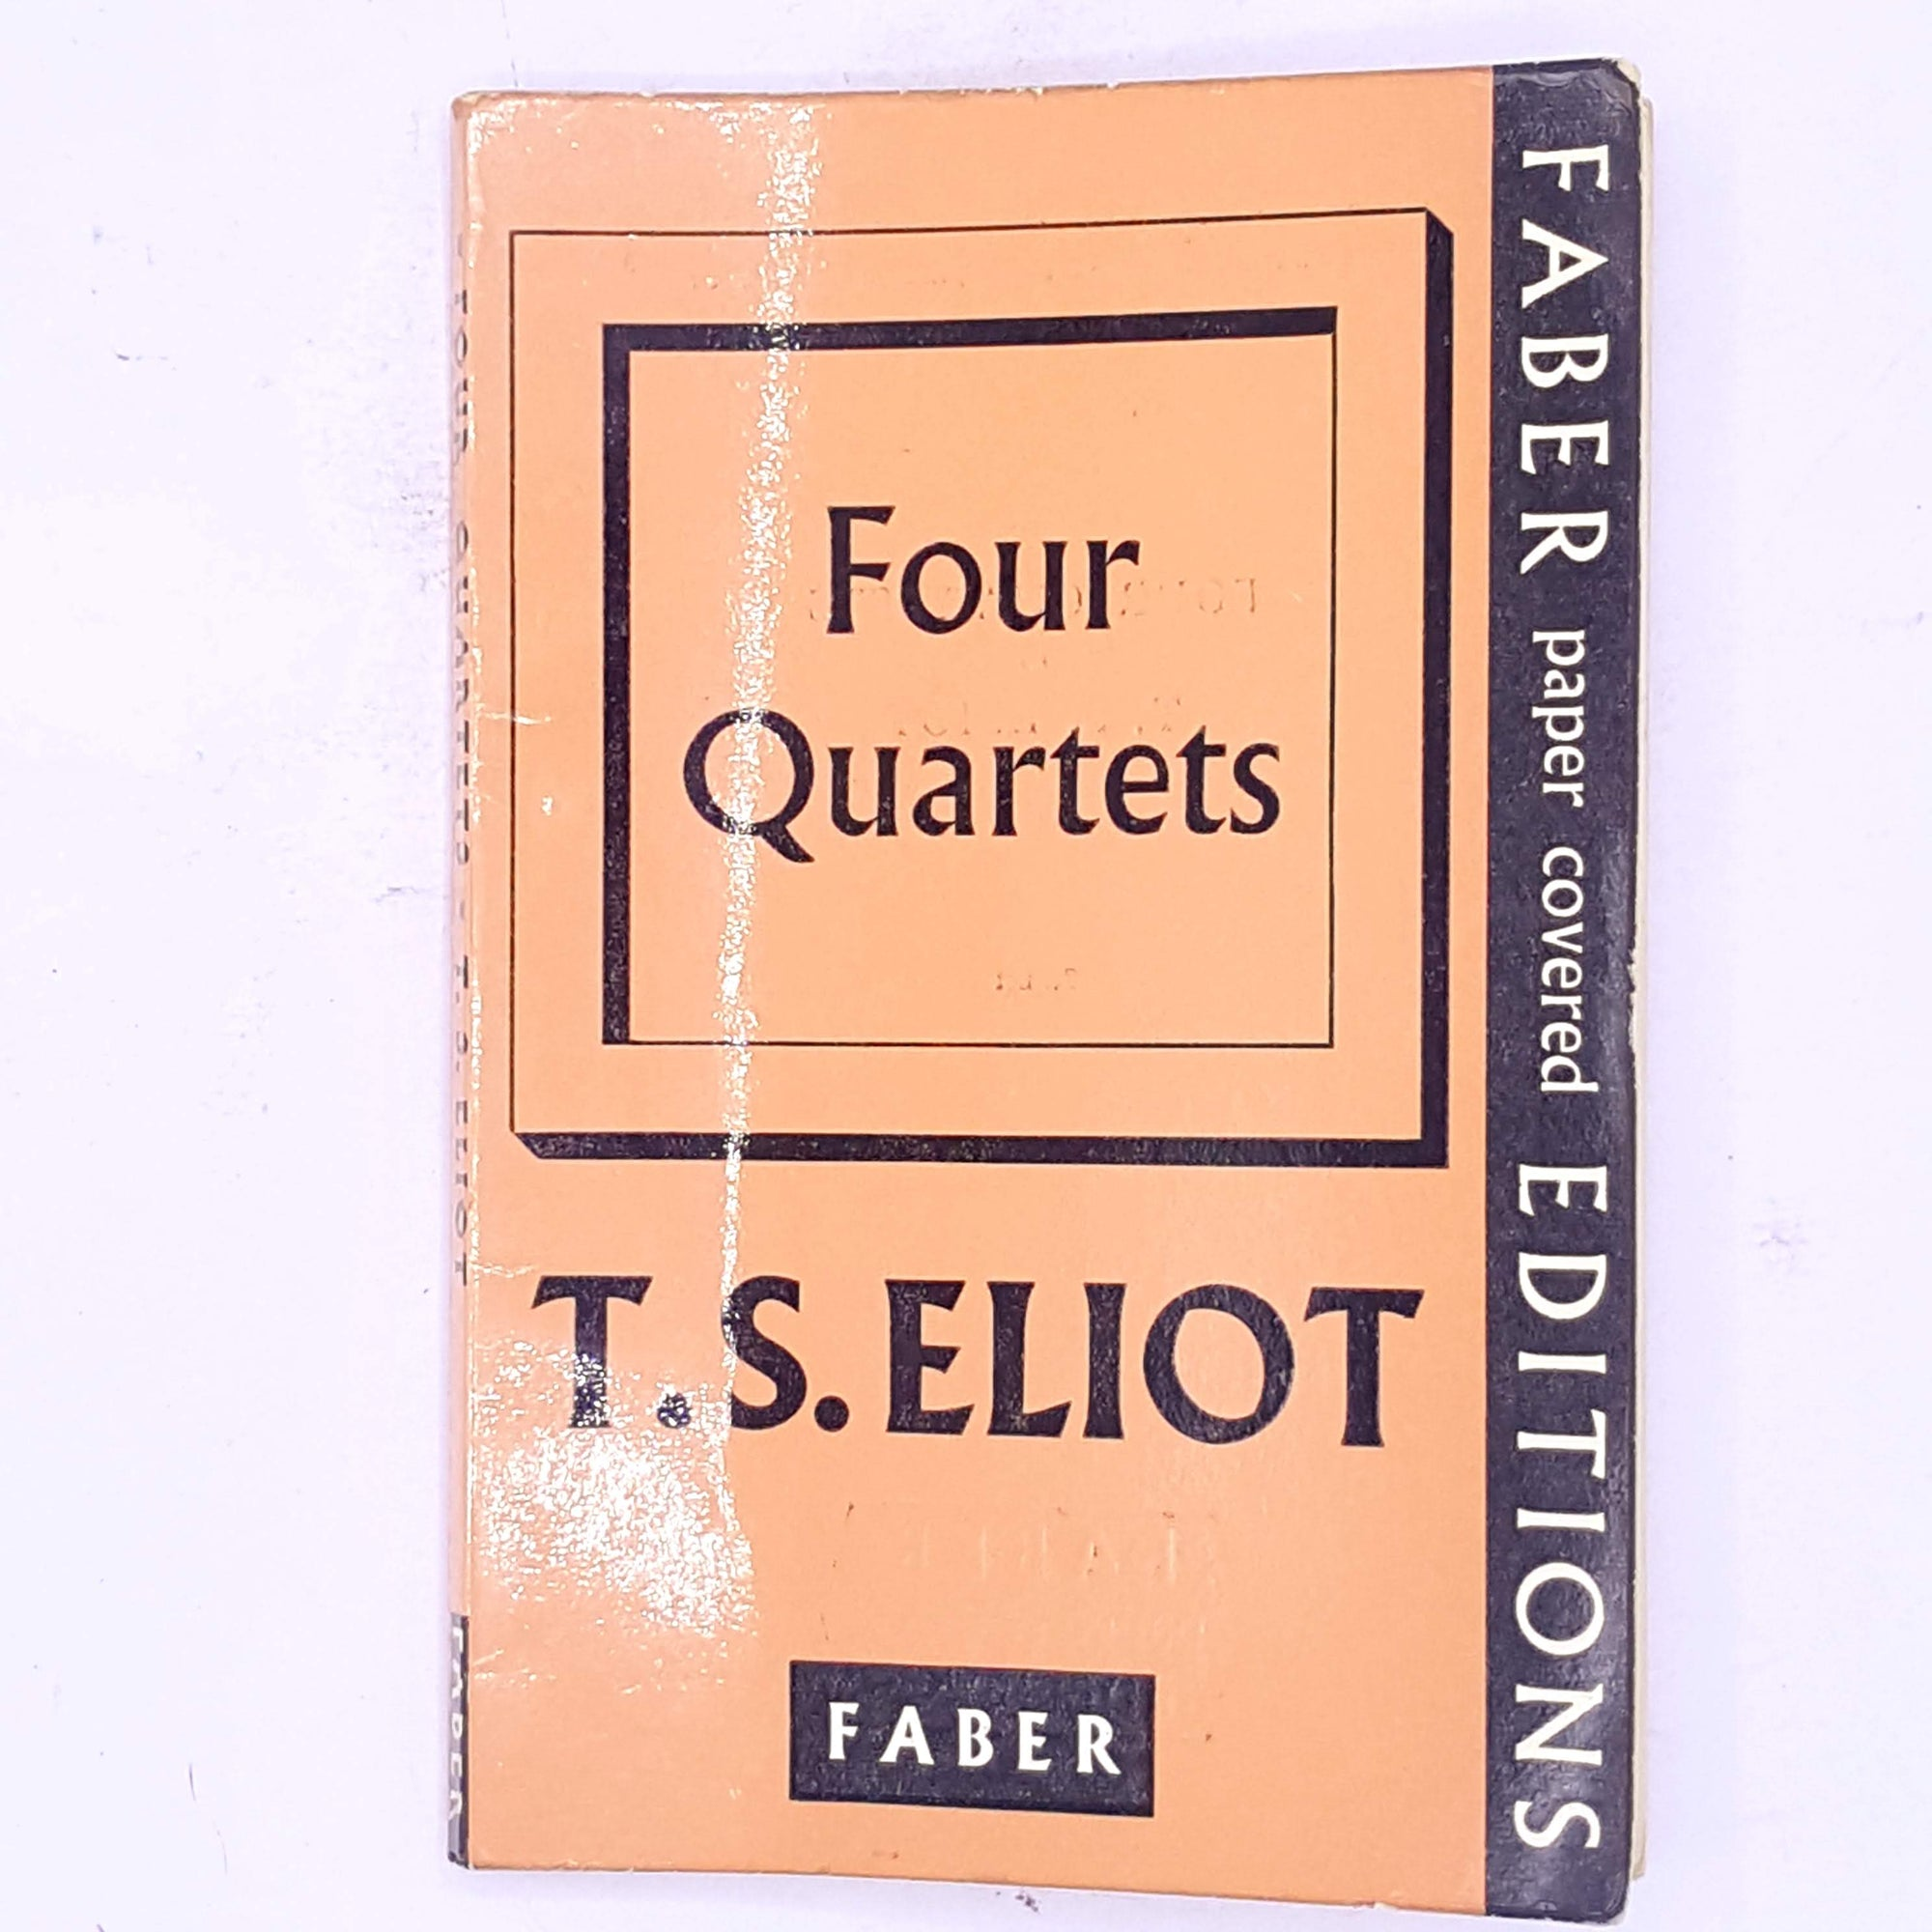 T.S. Eliot - Four Quarters